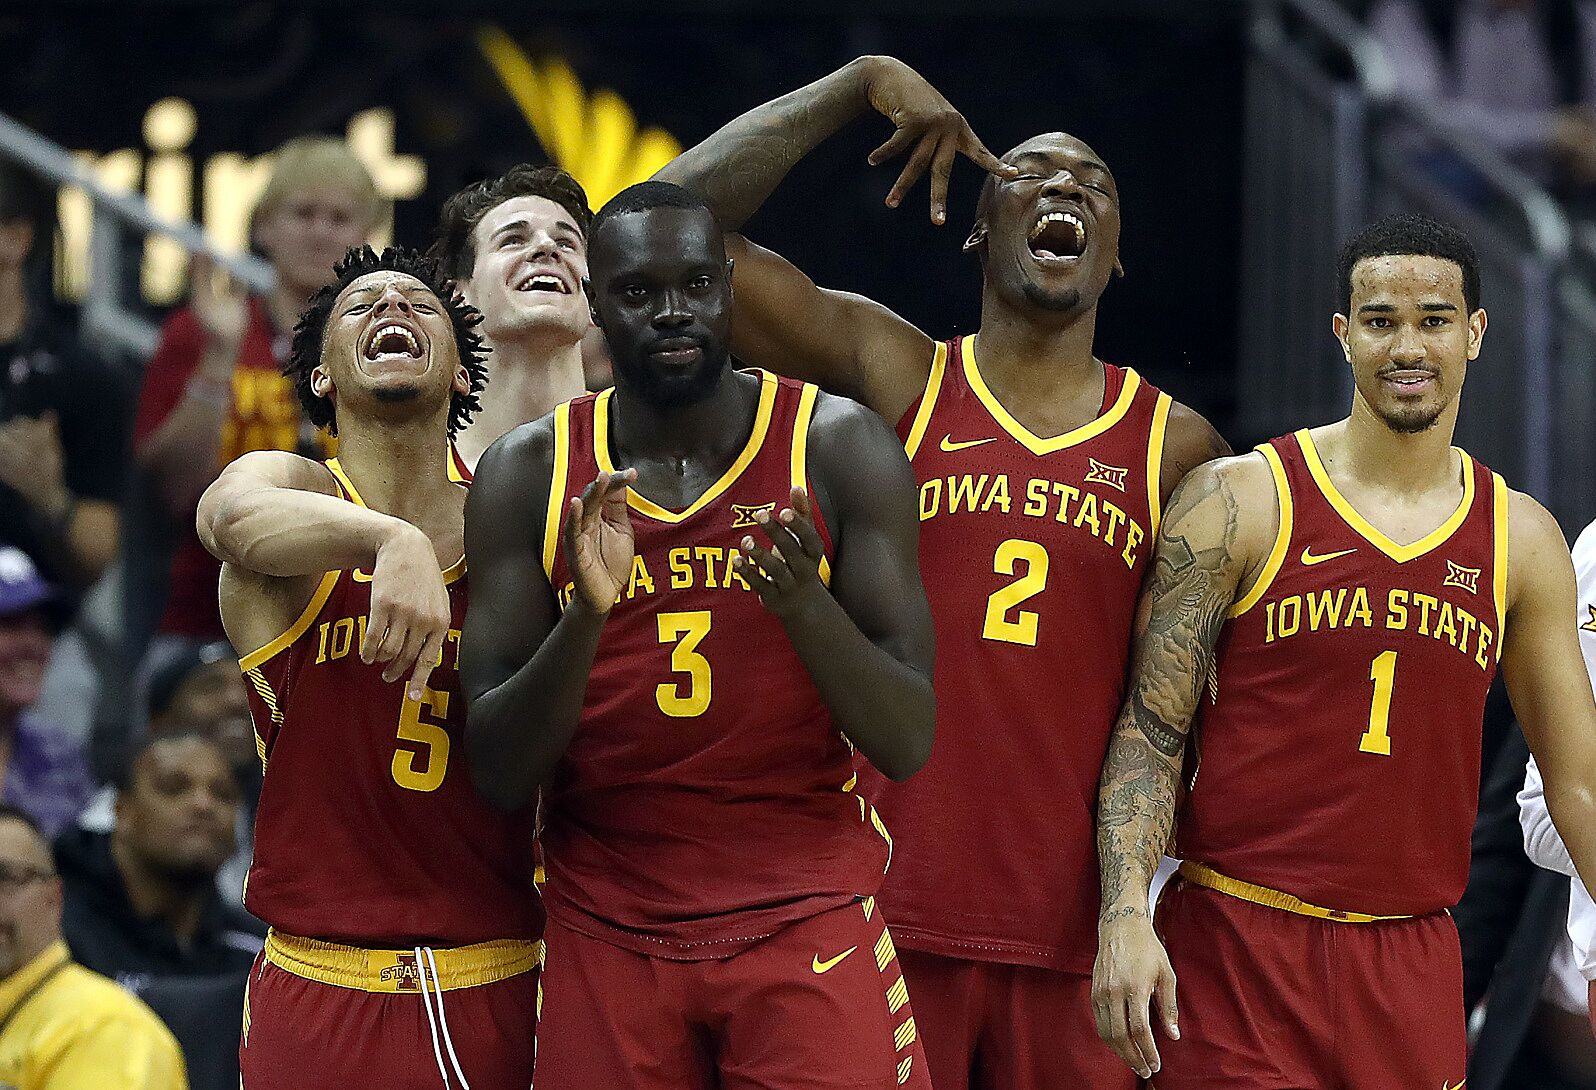 Iowa State Basketball: Can Cyclones become Big 12 contenders in 2019-20?